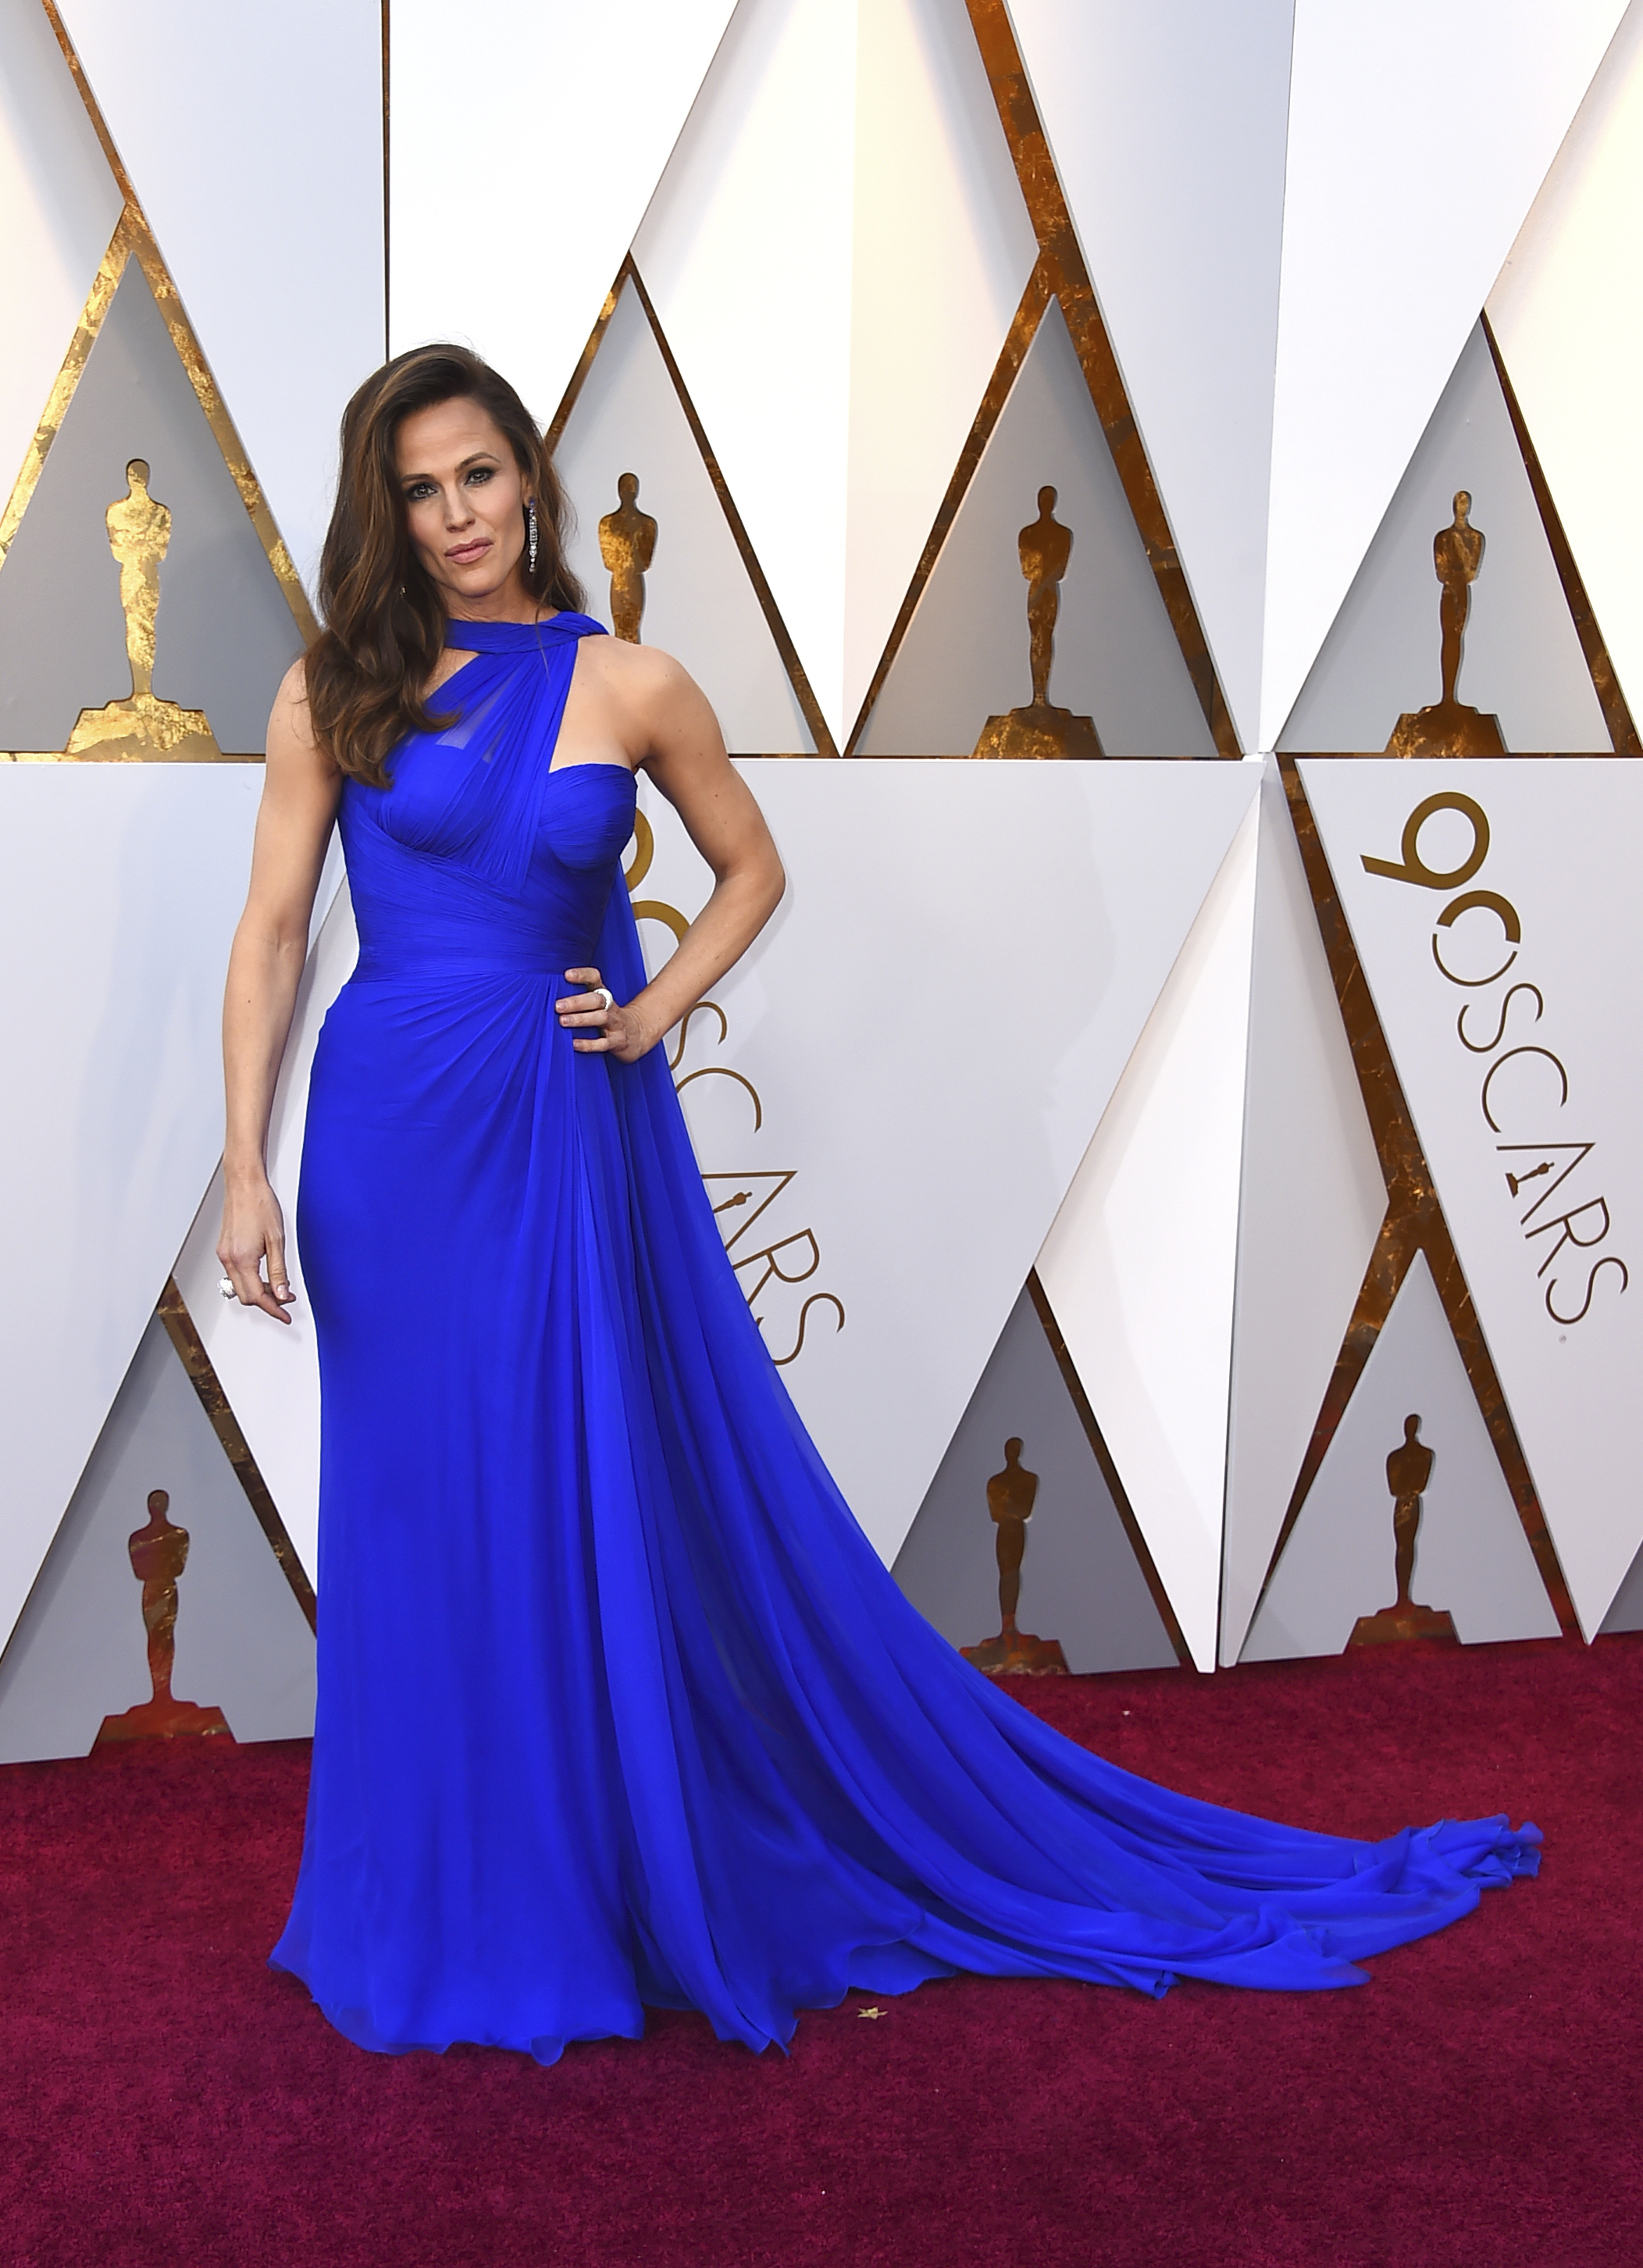 "<div class=""meta image-caption""><div class=""origin-logo origin-image none""><span>none</span></div><span class=""caption-text"">Jennifer Garner arrives at the Oscars on Sunday, March 4, 2018, at the Dolby Theatre in Los Angeles. (Jordan Strauss/Invision/AP)</span></div>"